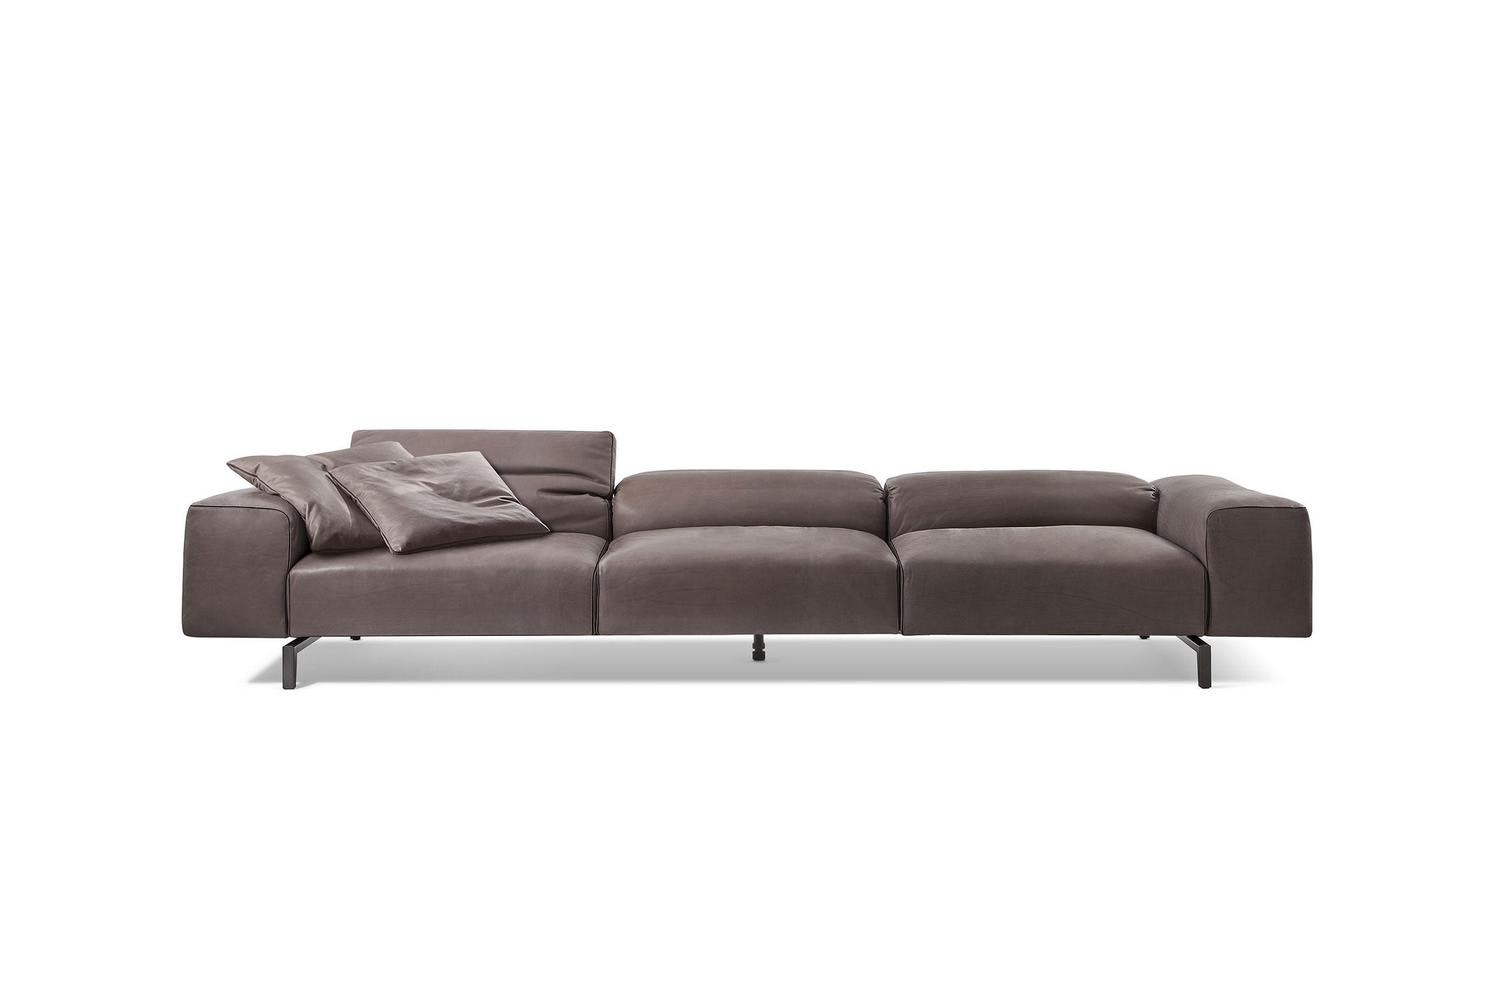 204 Scighera Sofa by Piero Lissoni for Cassina